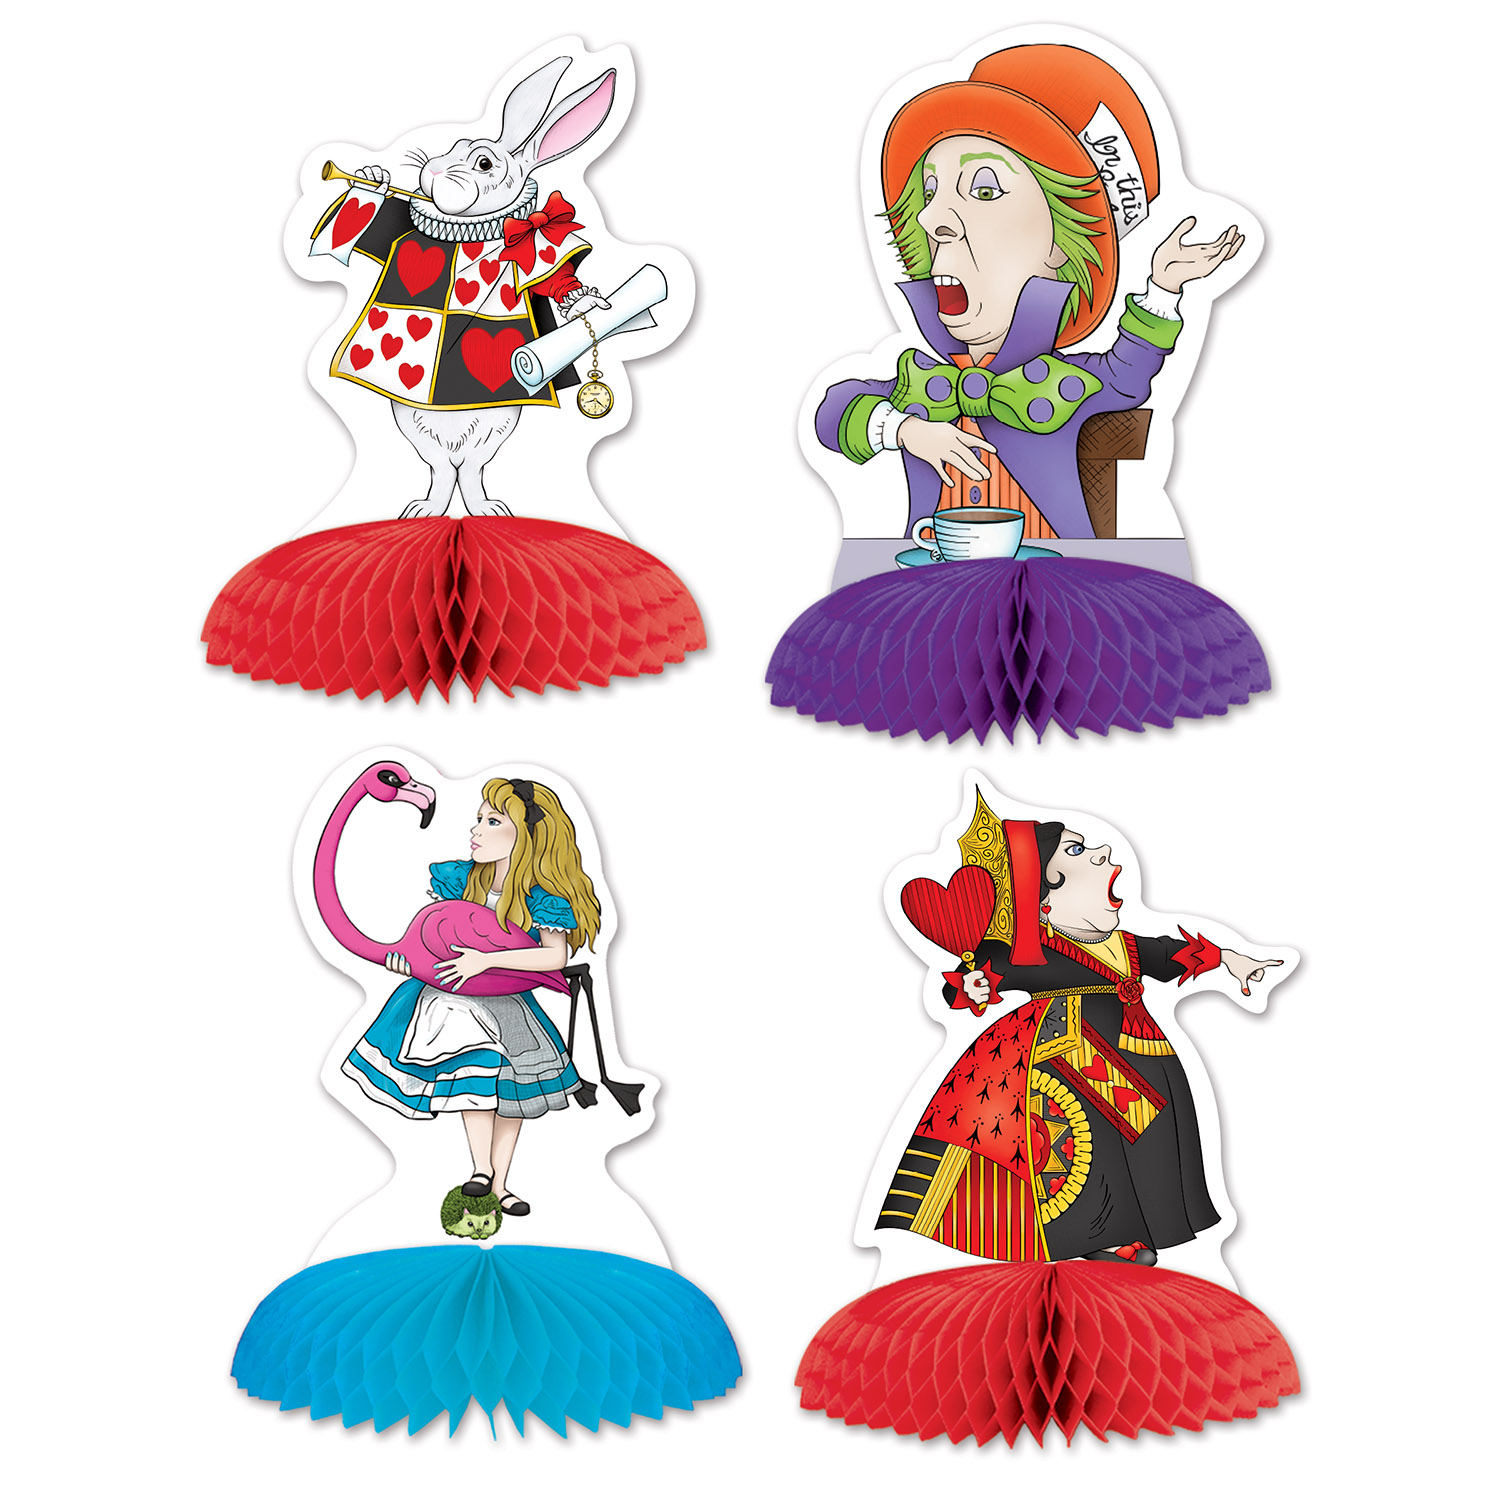 Alice In Wonderland Mini Centerpieces (Pack of 48) Alice In Wonderland, Mini Centerpieces , Table Decor, Inexpensive party supplies, Wholesale party favors, Party goods, Birthday party supplies